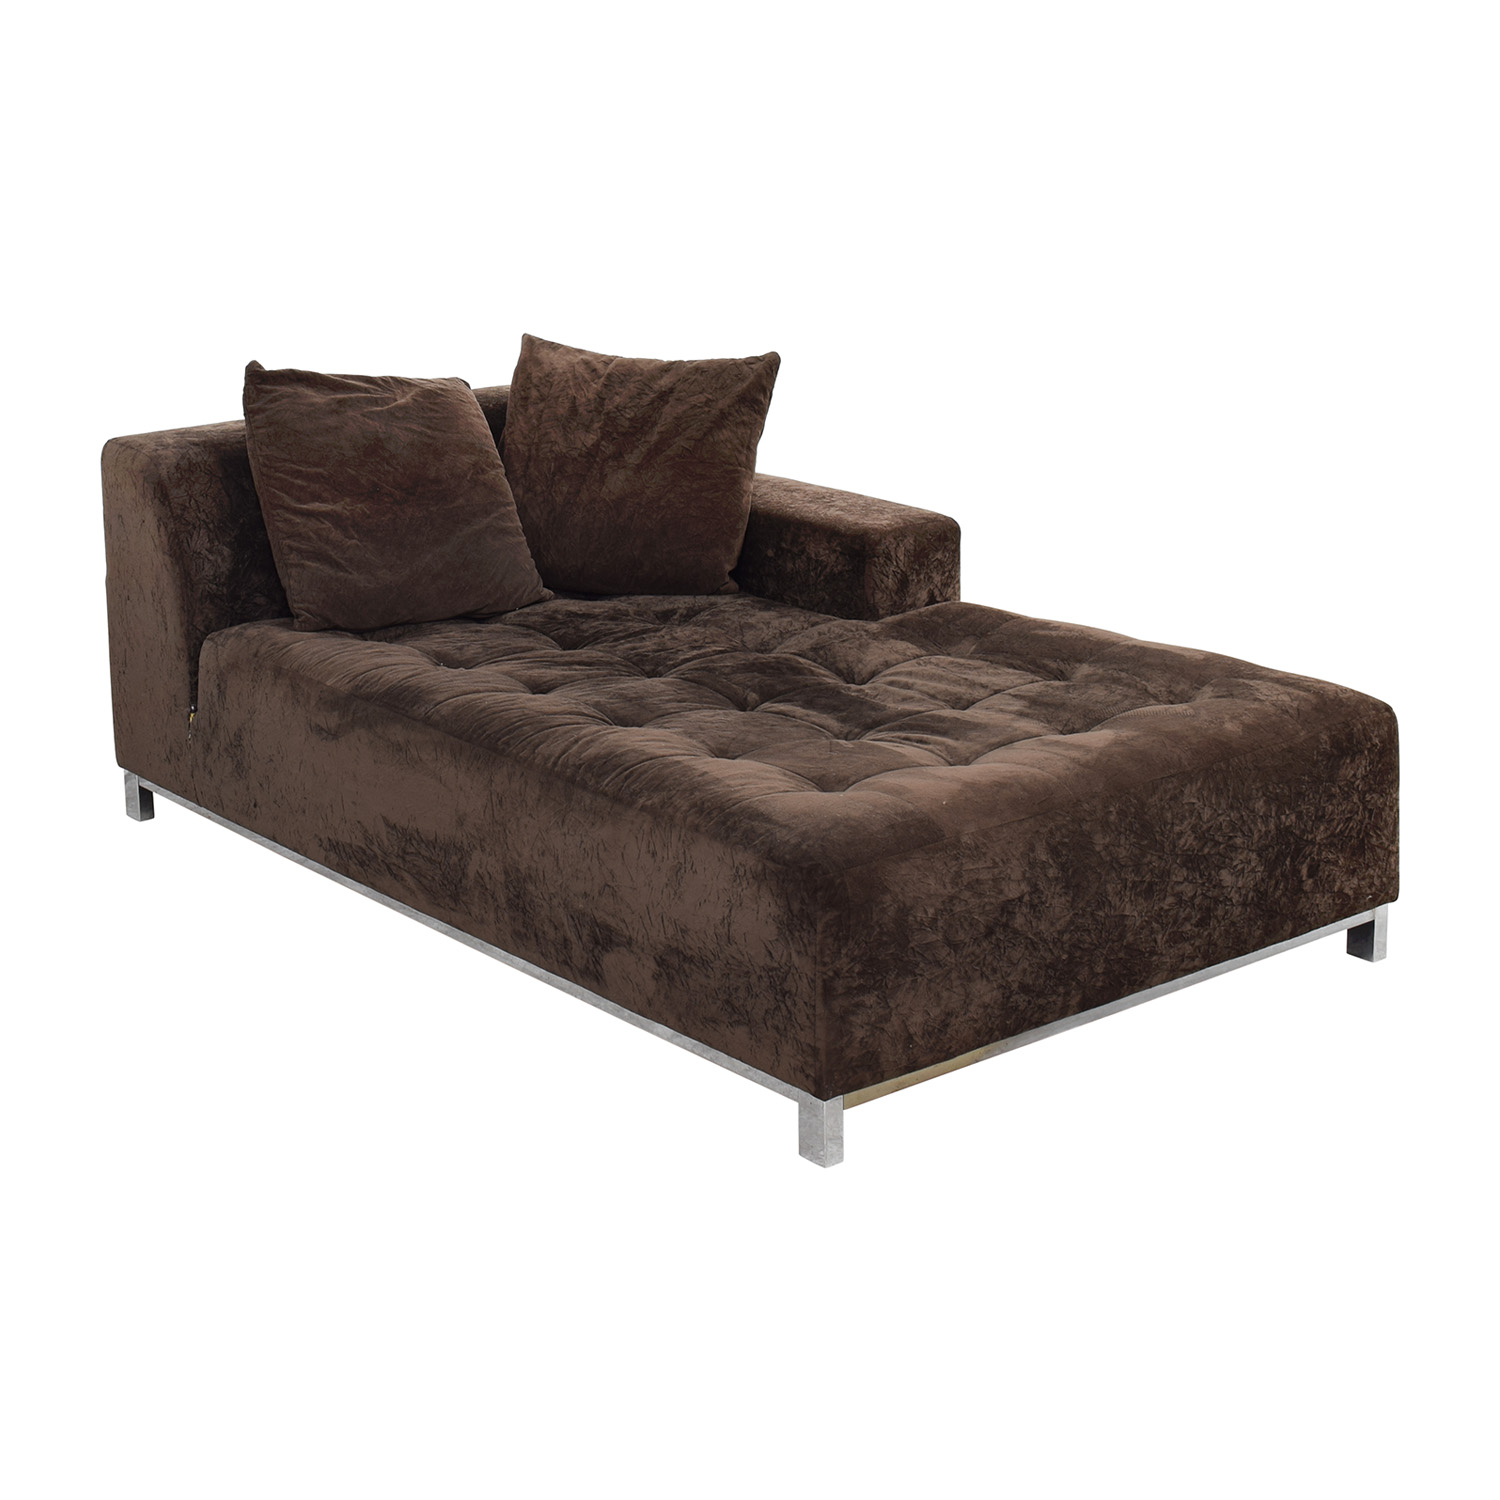 66% OFF Safaviah Safaviah Brown Tuifted Chaise Lounge Sofas